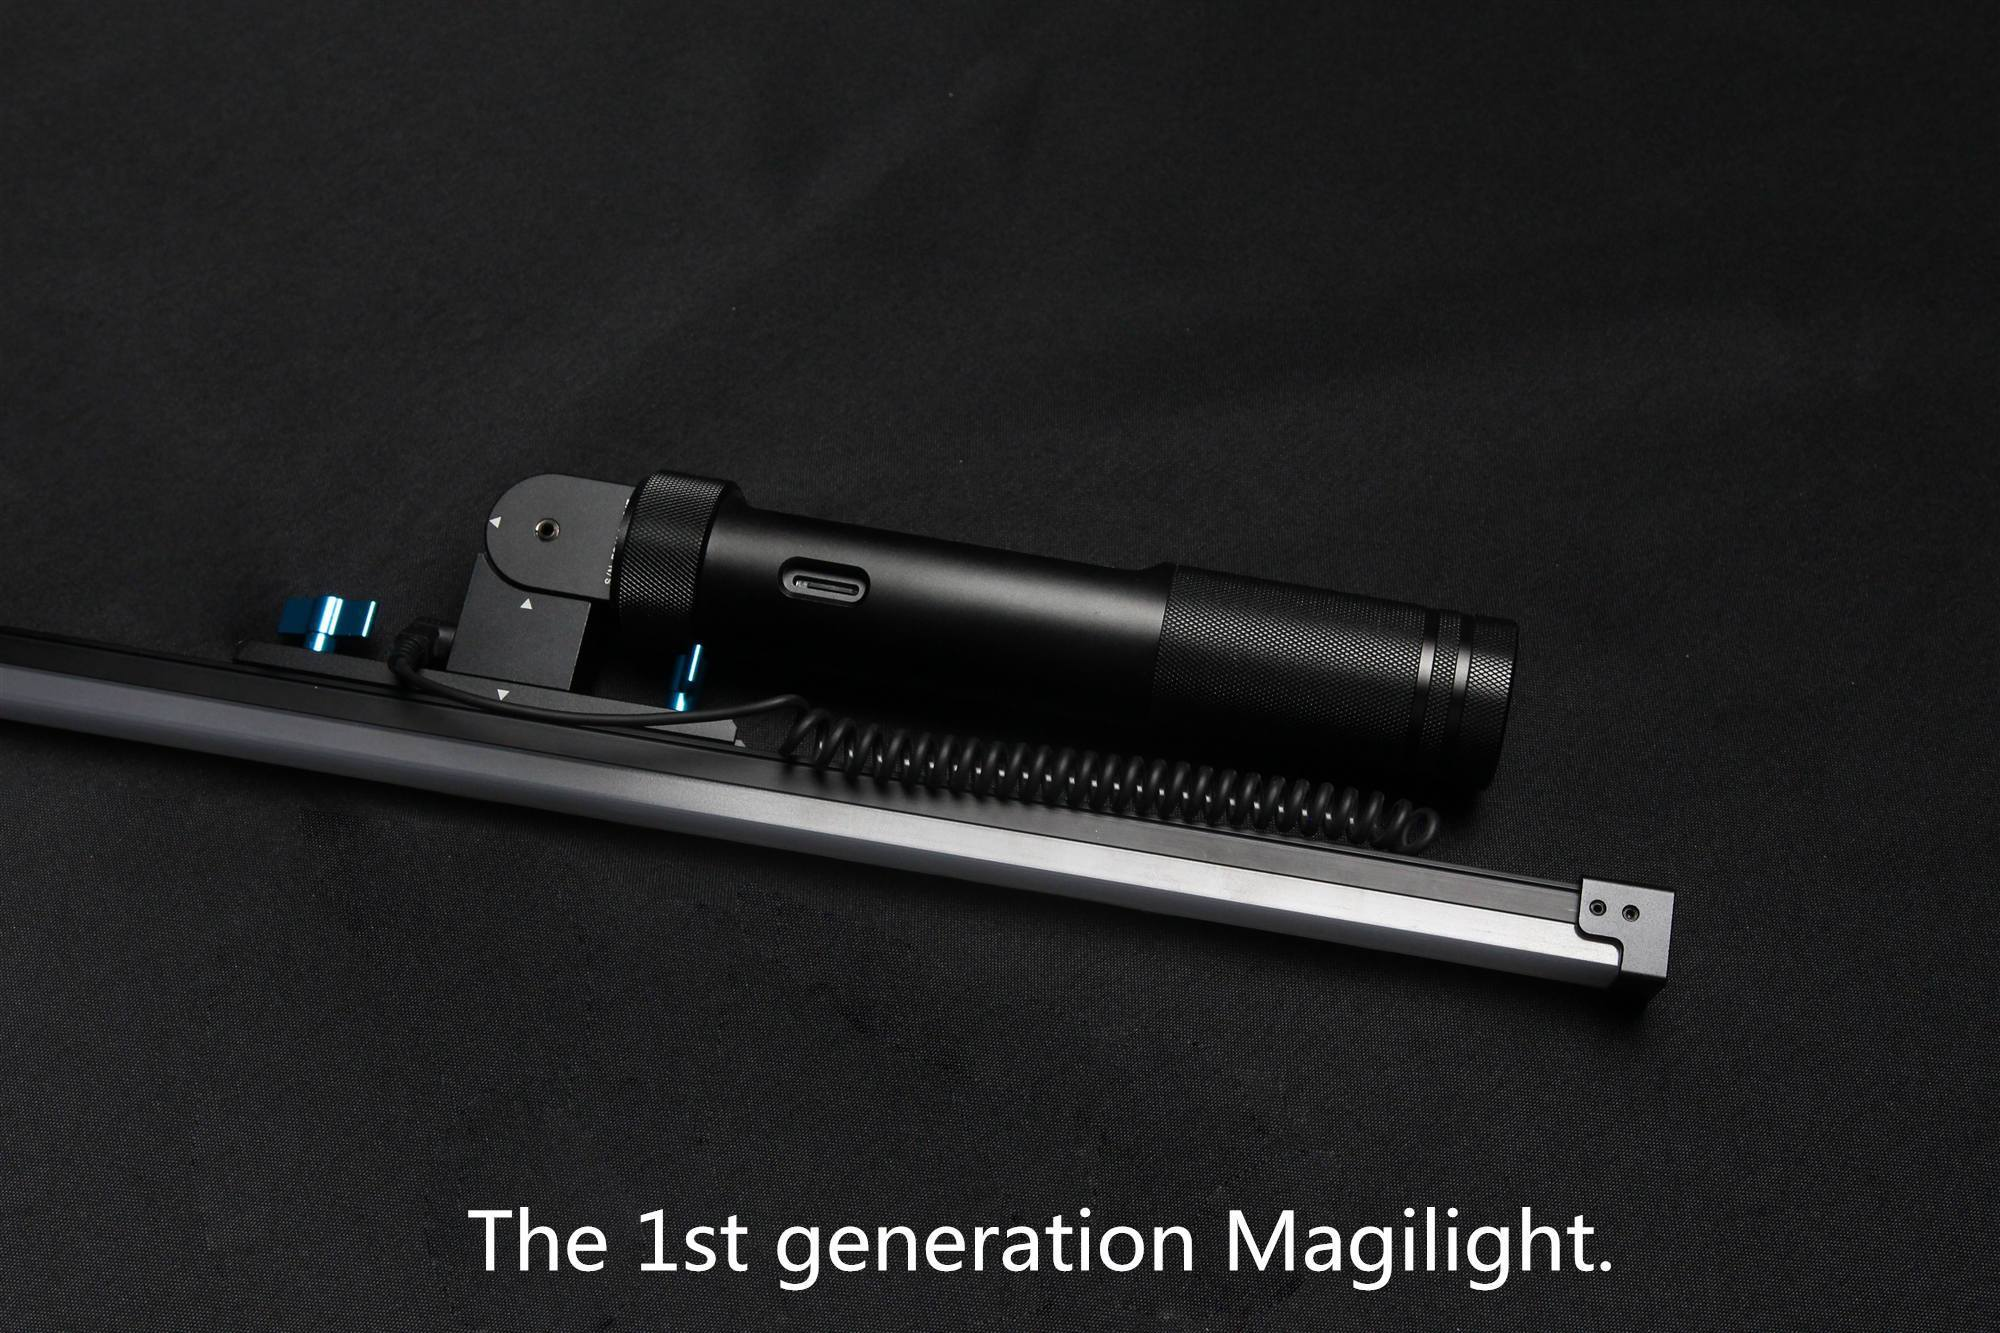 Fotorgear Replacement controller of the 1st generation of Magilight